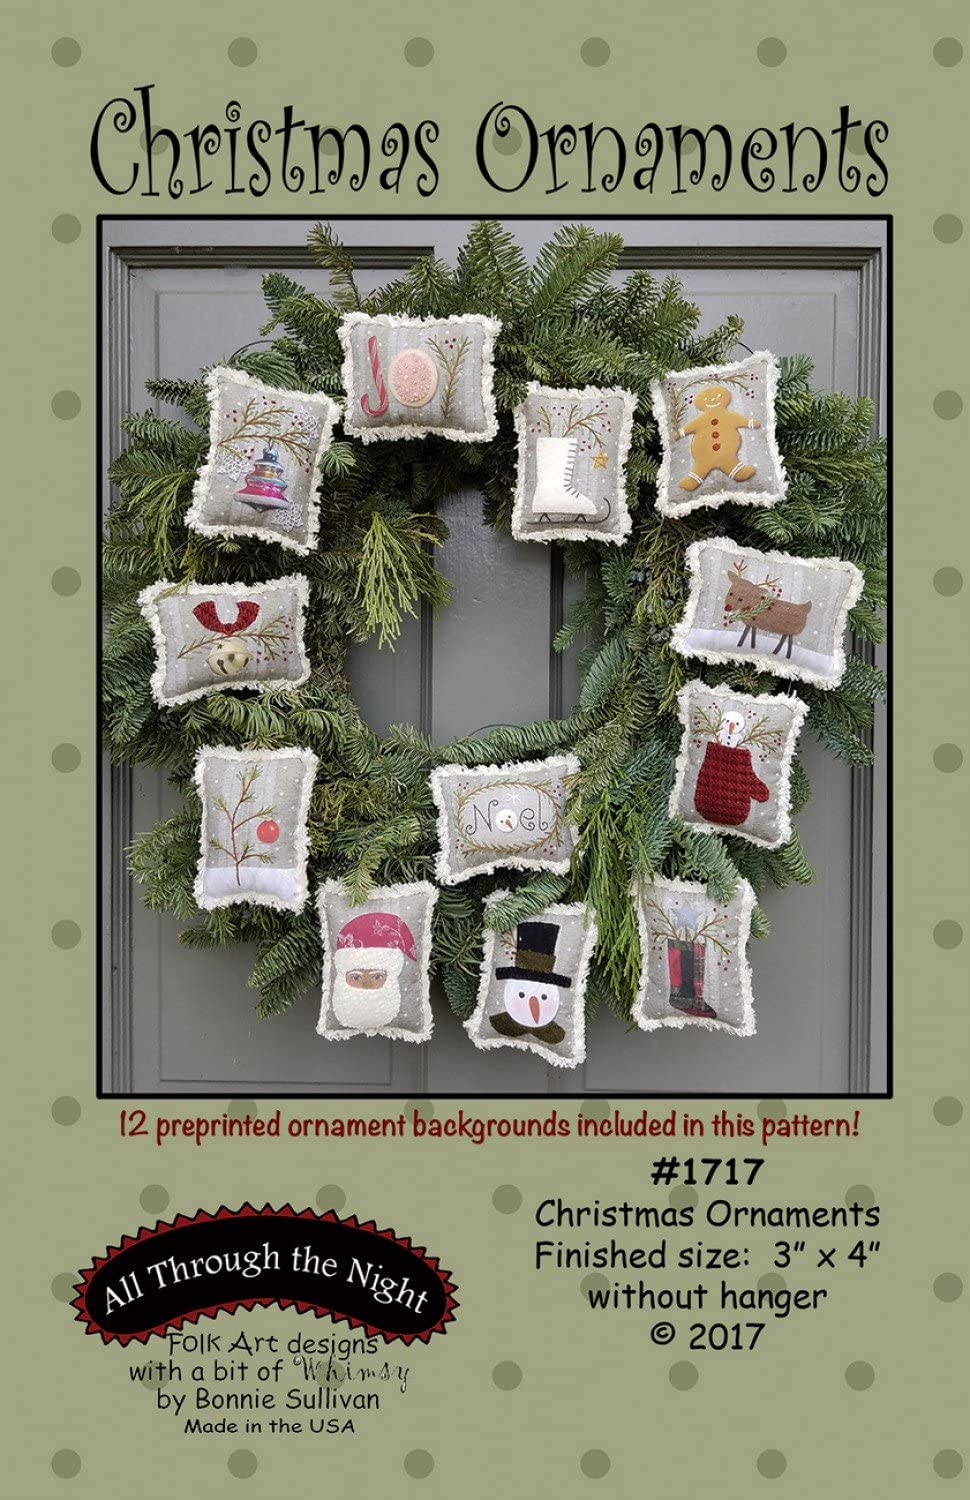 Christmas Ornaments Applique Patterns by Bonnie Sullivan from All Through the Night #1717 Includes pre-printed background fabric 3